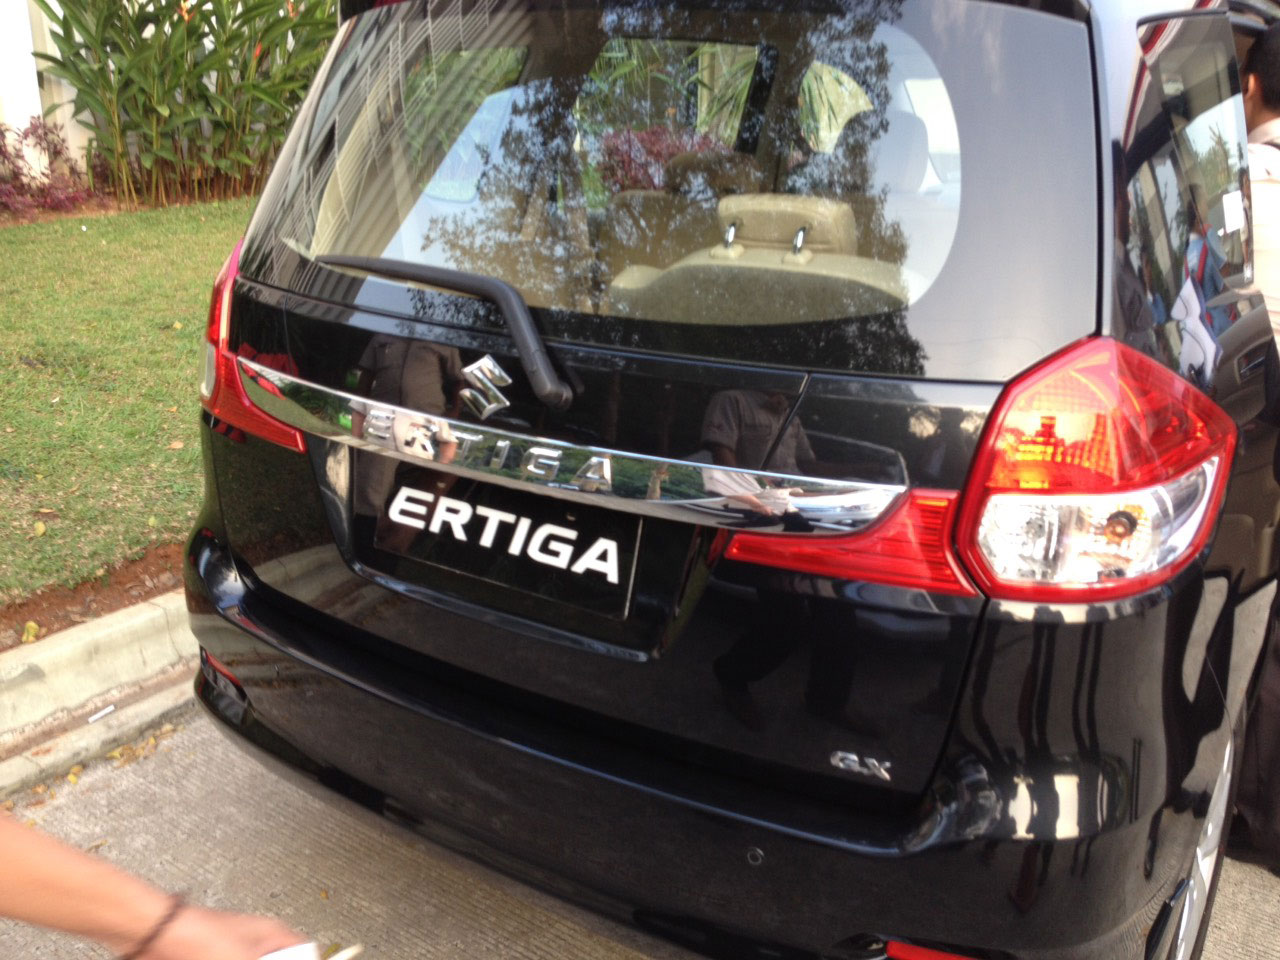 Berita, Rear-Garnish-New-Suzuki-Ertiga-Facelift-2015: First Impression Review Suzuki Ertiga Facelift 2015